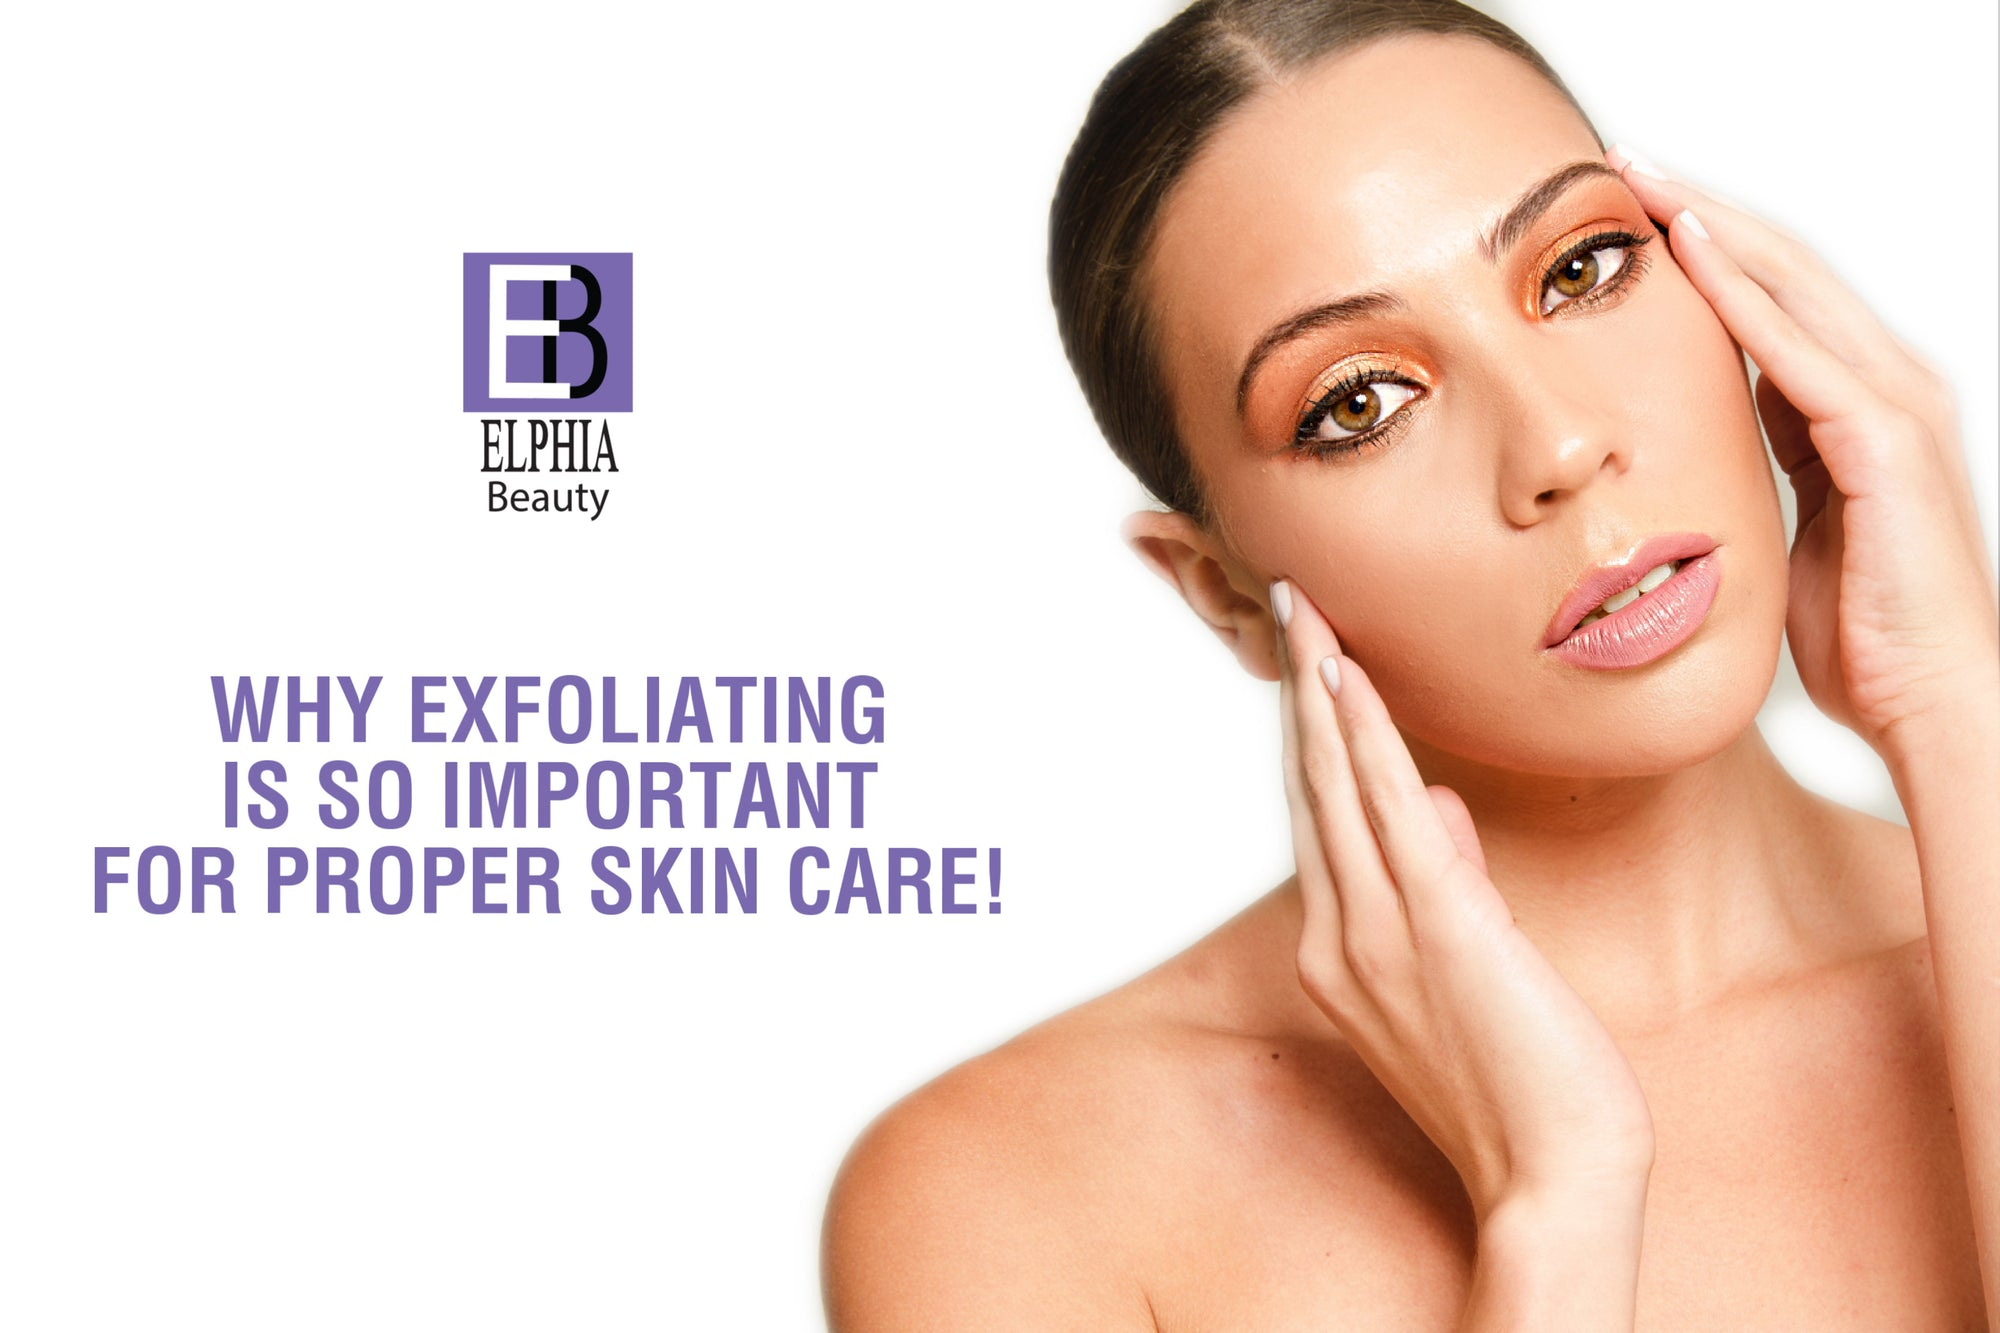 Why Exfoliating is So Important for Proper Skin Care